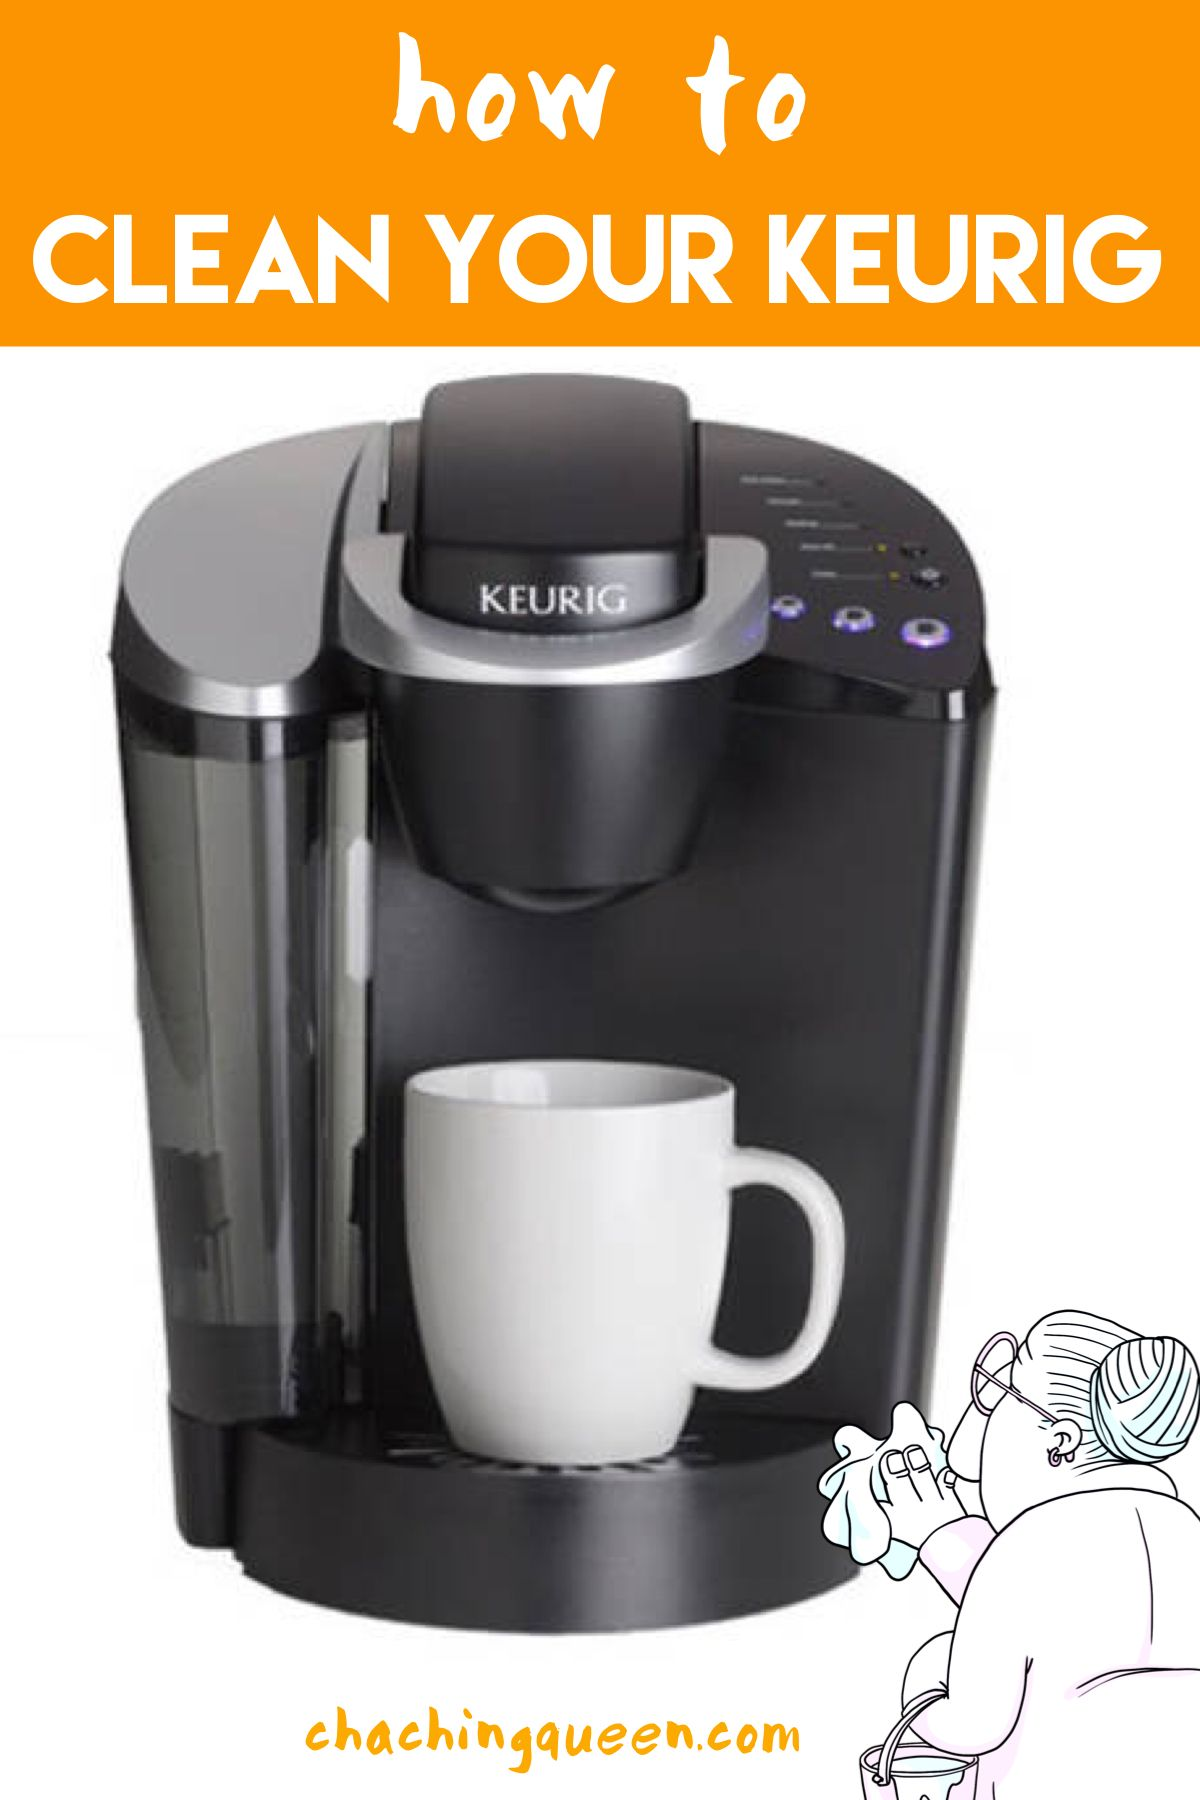 How To Clean A Keurig Coffee Maker With Vinegar With Images